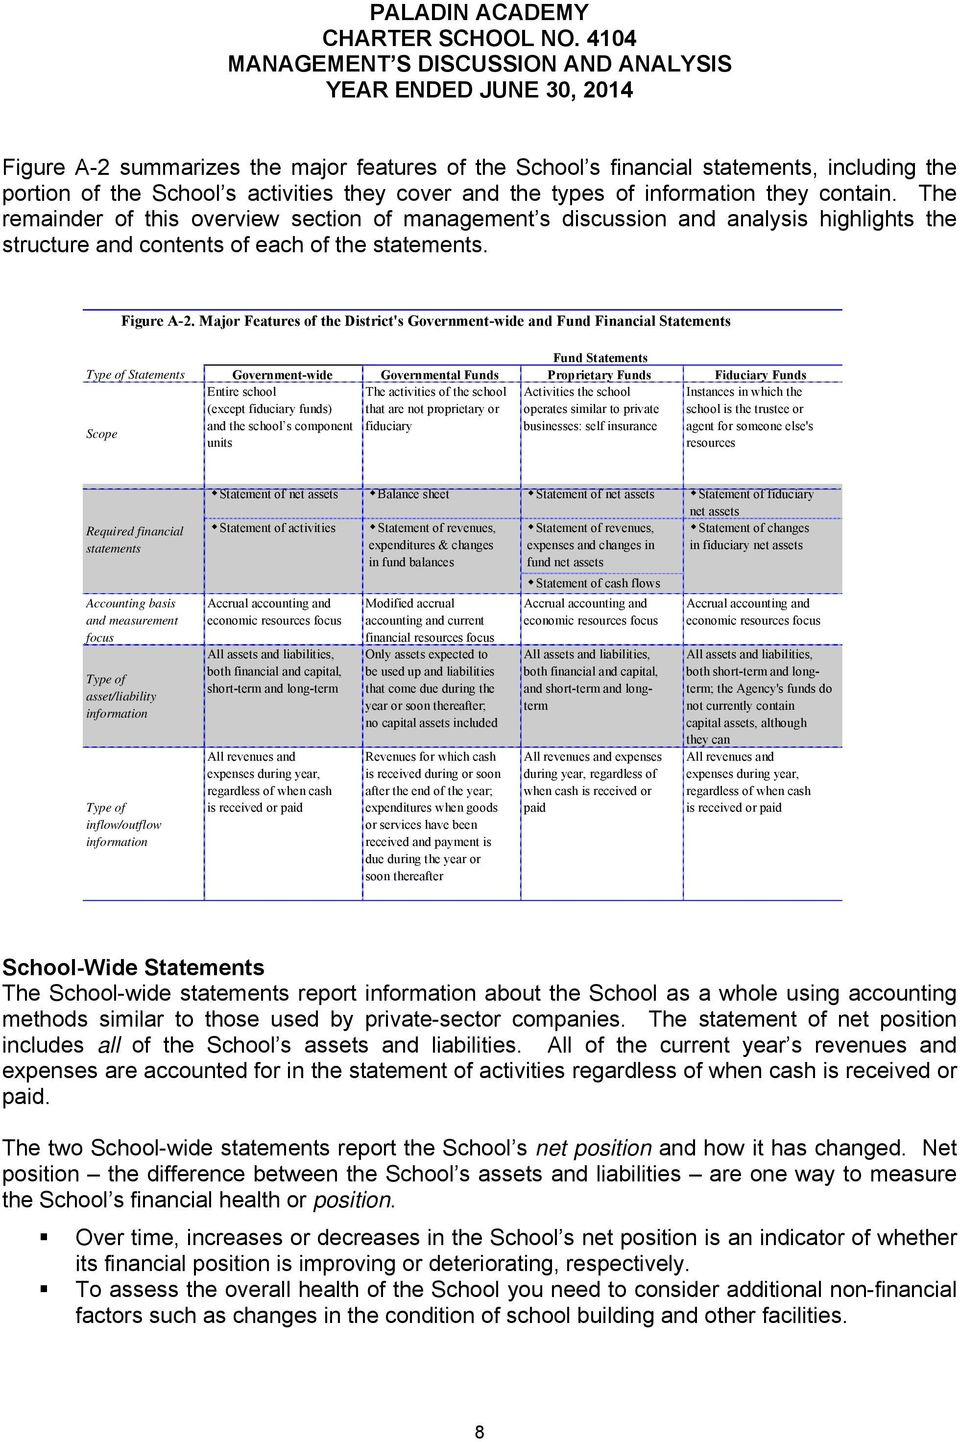 The remainder of this overview section of management s discussion and analysis highlights the structure and contents of each of the statements. Figure A-2.